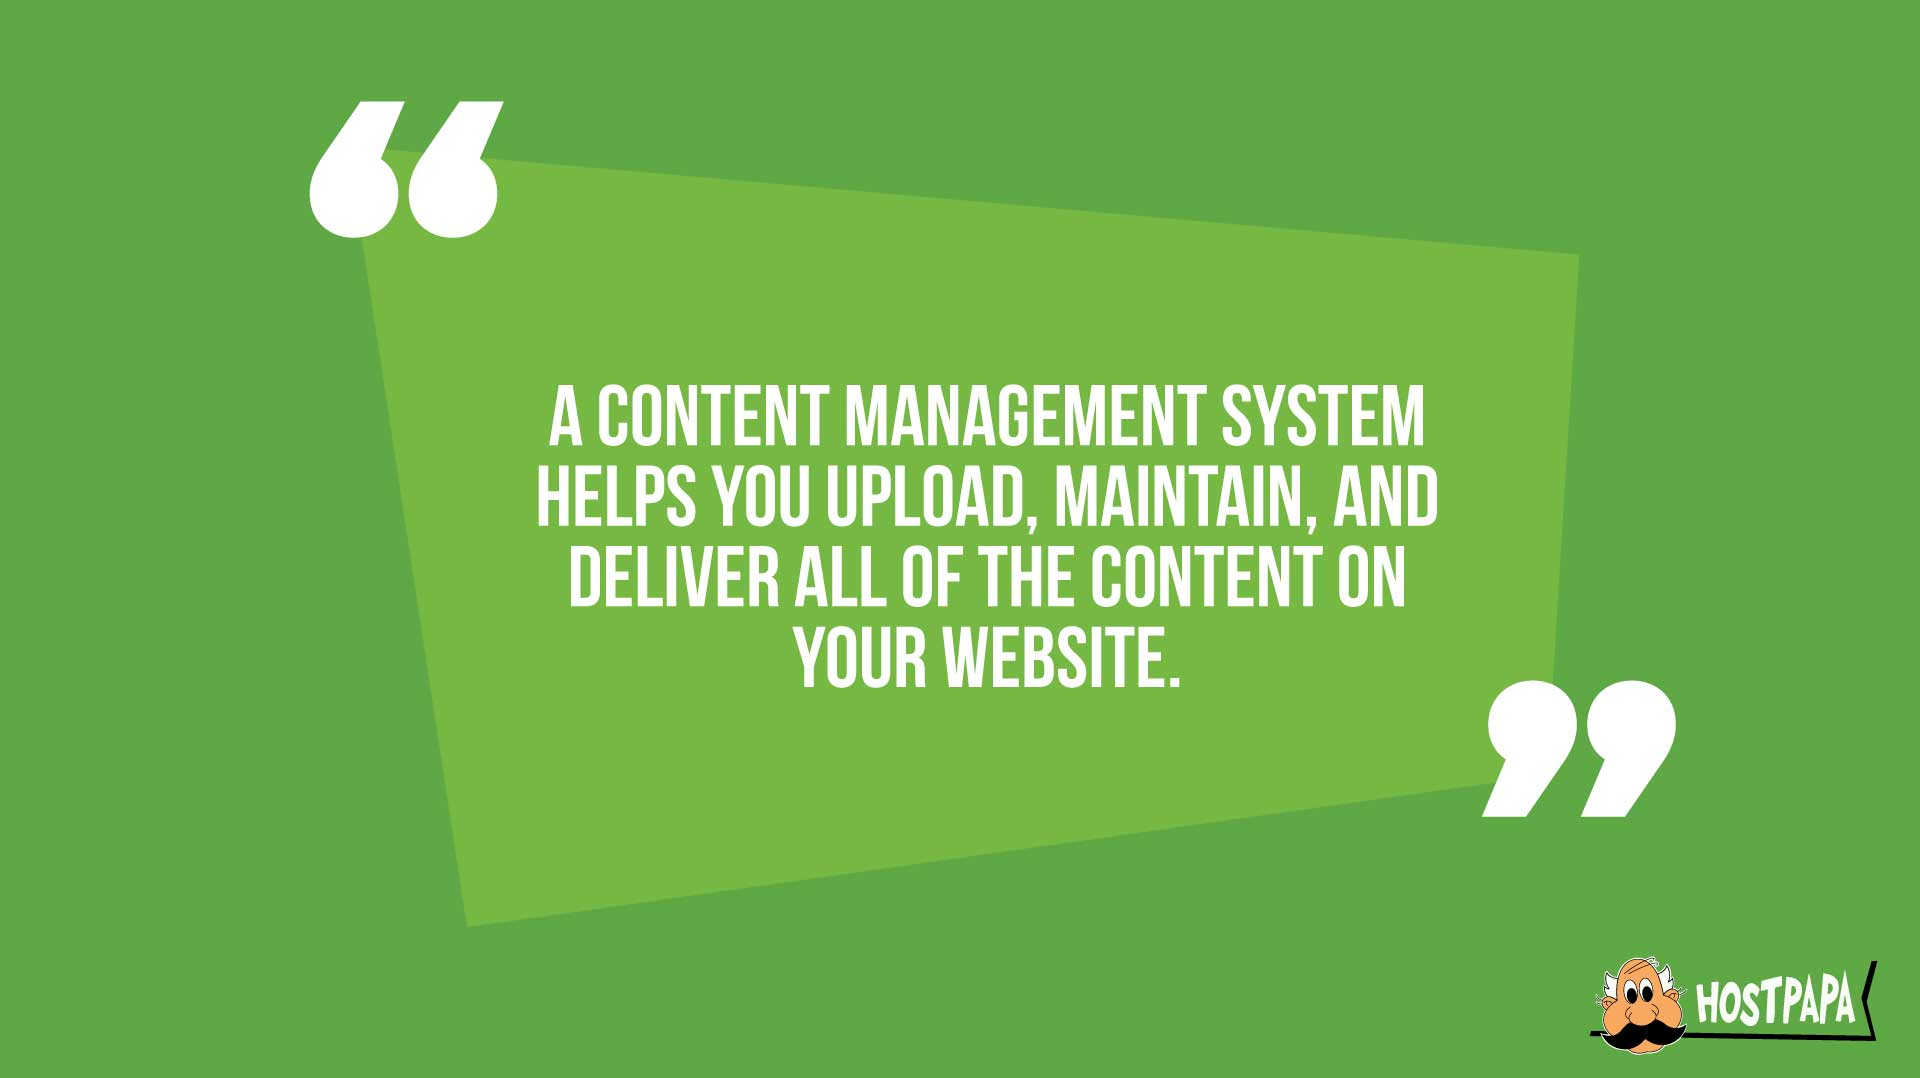 A content management system helps you upload, maintain, and deliver all of the content on your website.